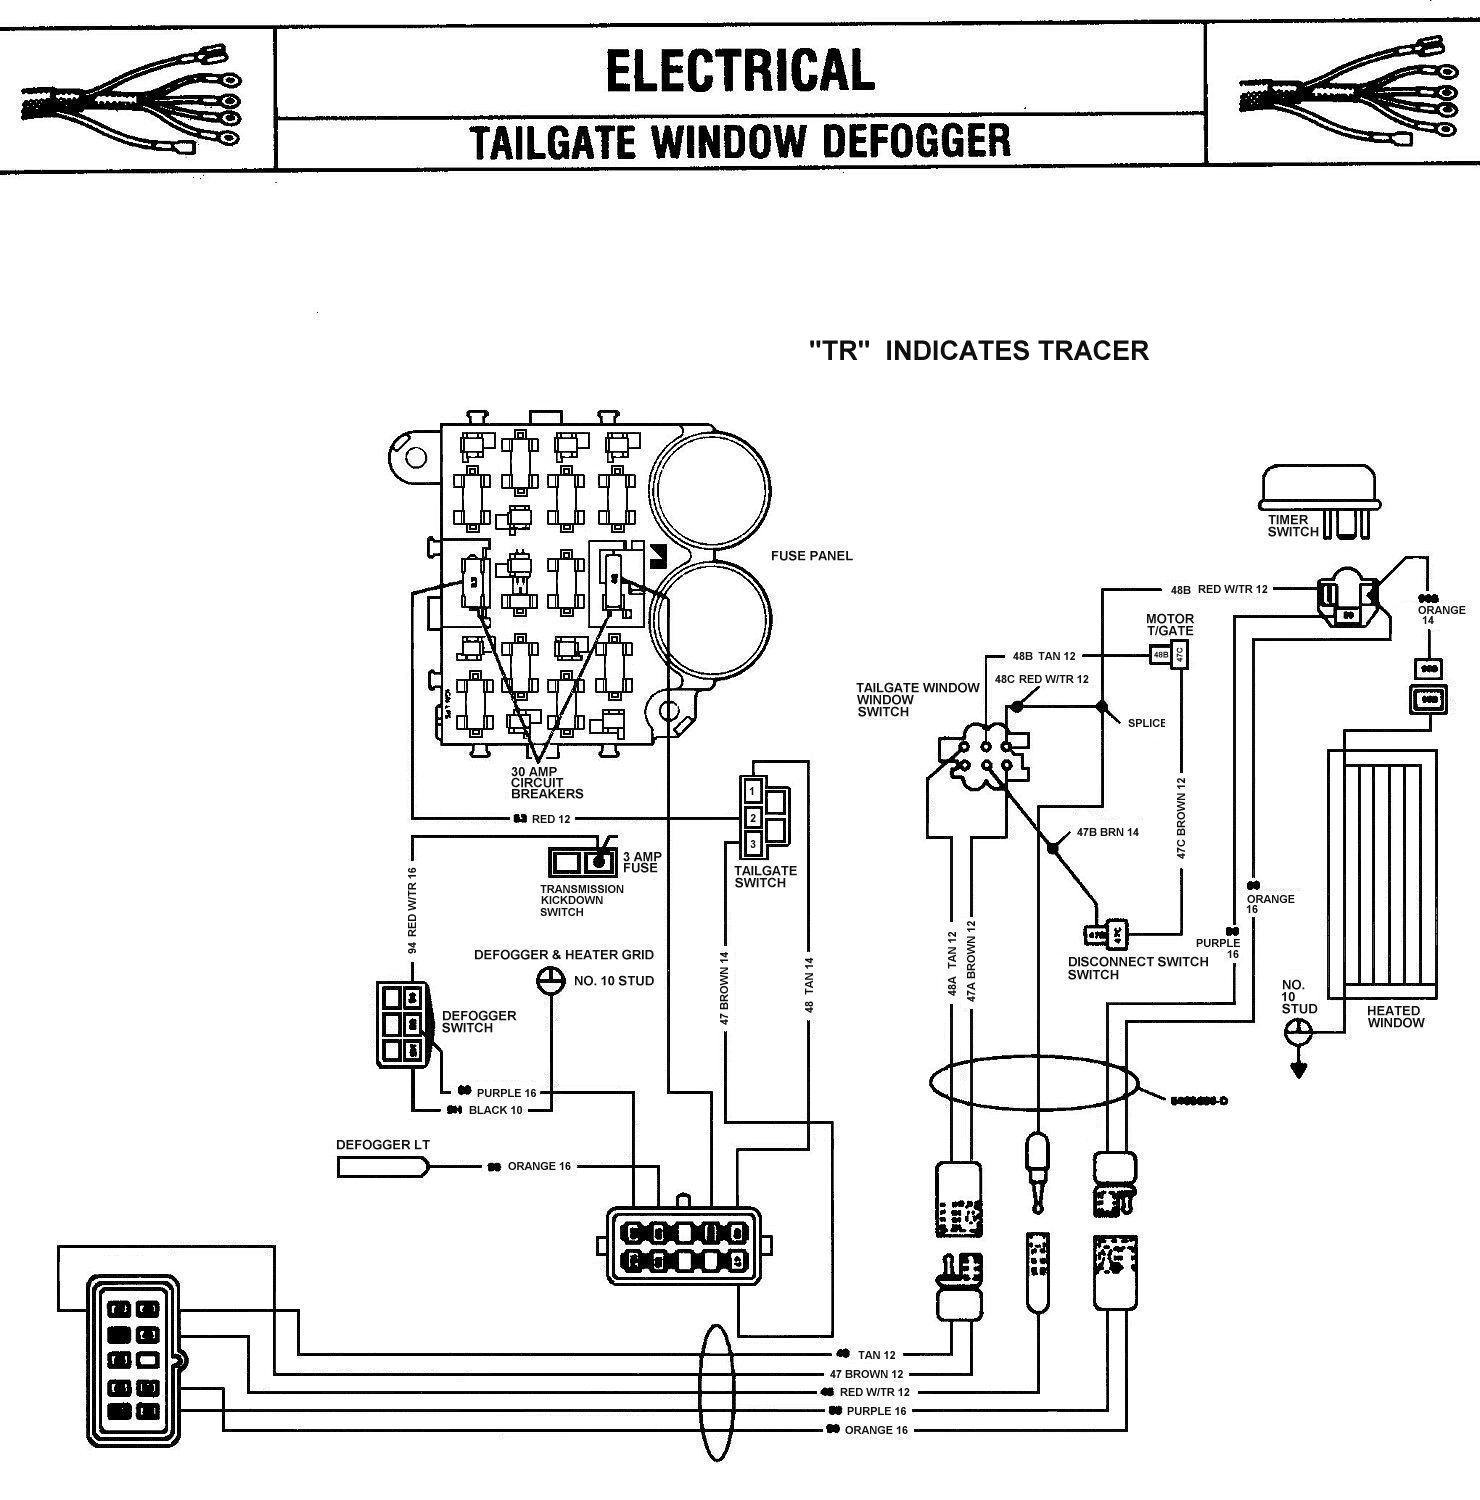 1985 pontiac fiero fuse diagram